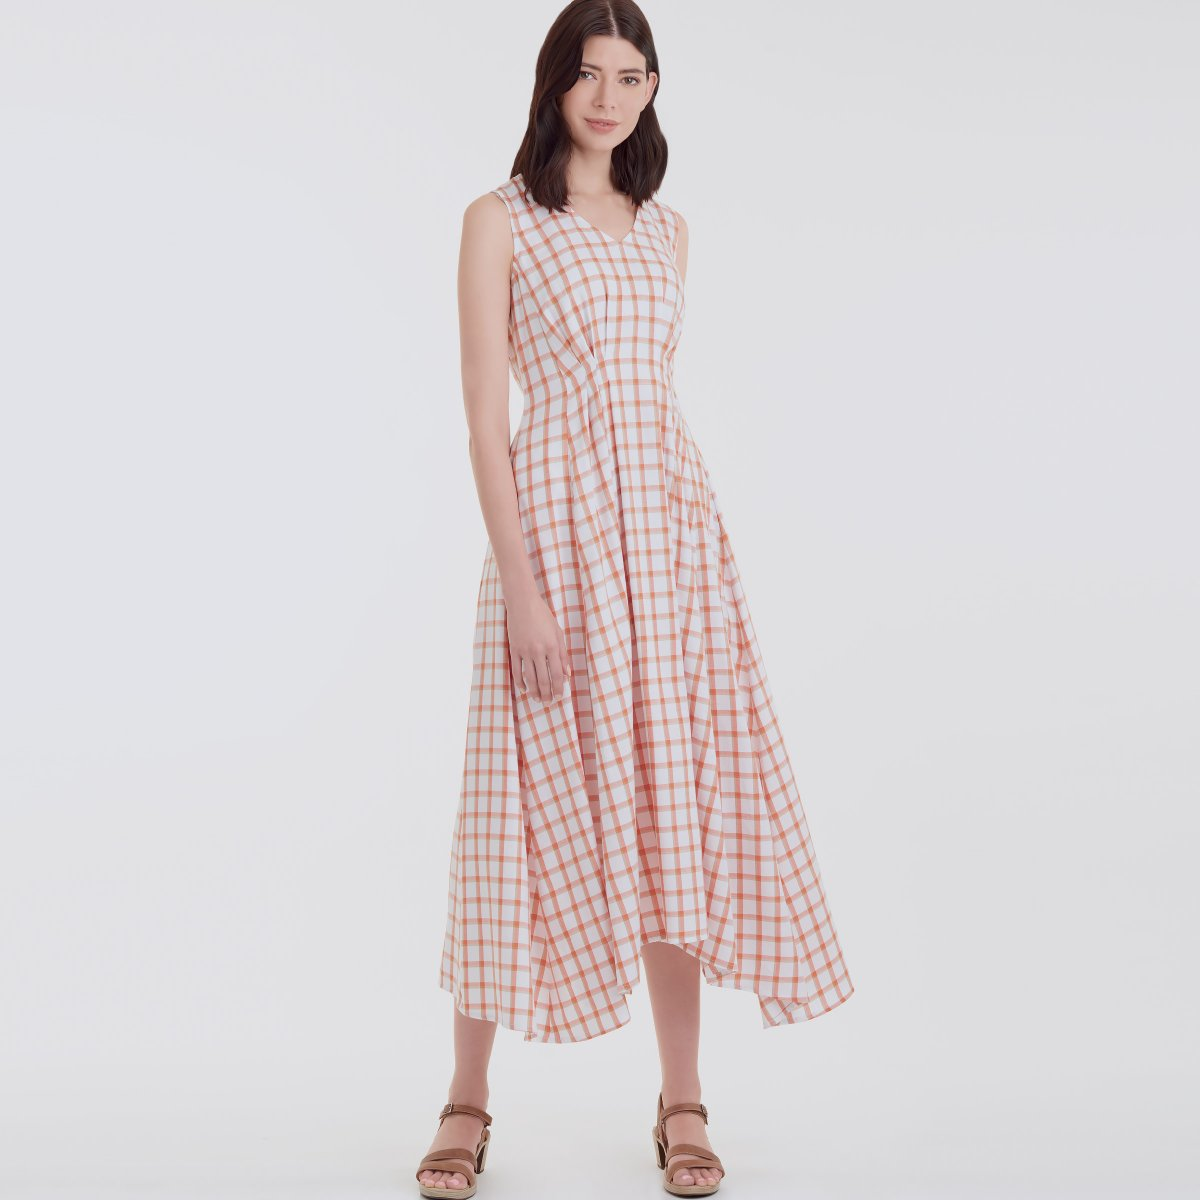 Simplicity 9134 is a beautiful dress with released pleats on the front and back. This makes it fitted at the waist, and extra swish-able on the bottom. Perfect for frolicking around! https://t.co/66J8kKV3L1 https://t.co/cRqfPbrmKe